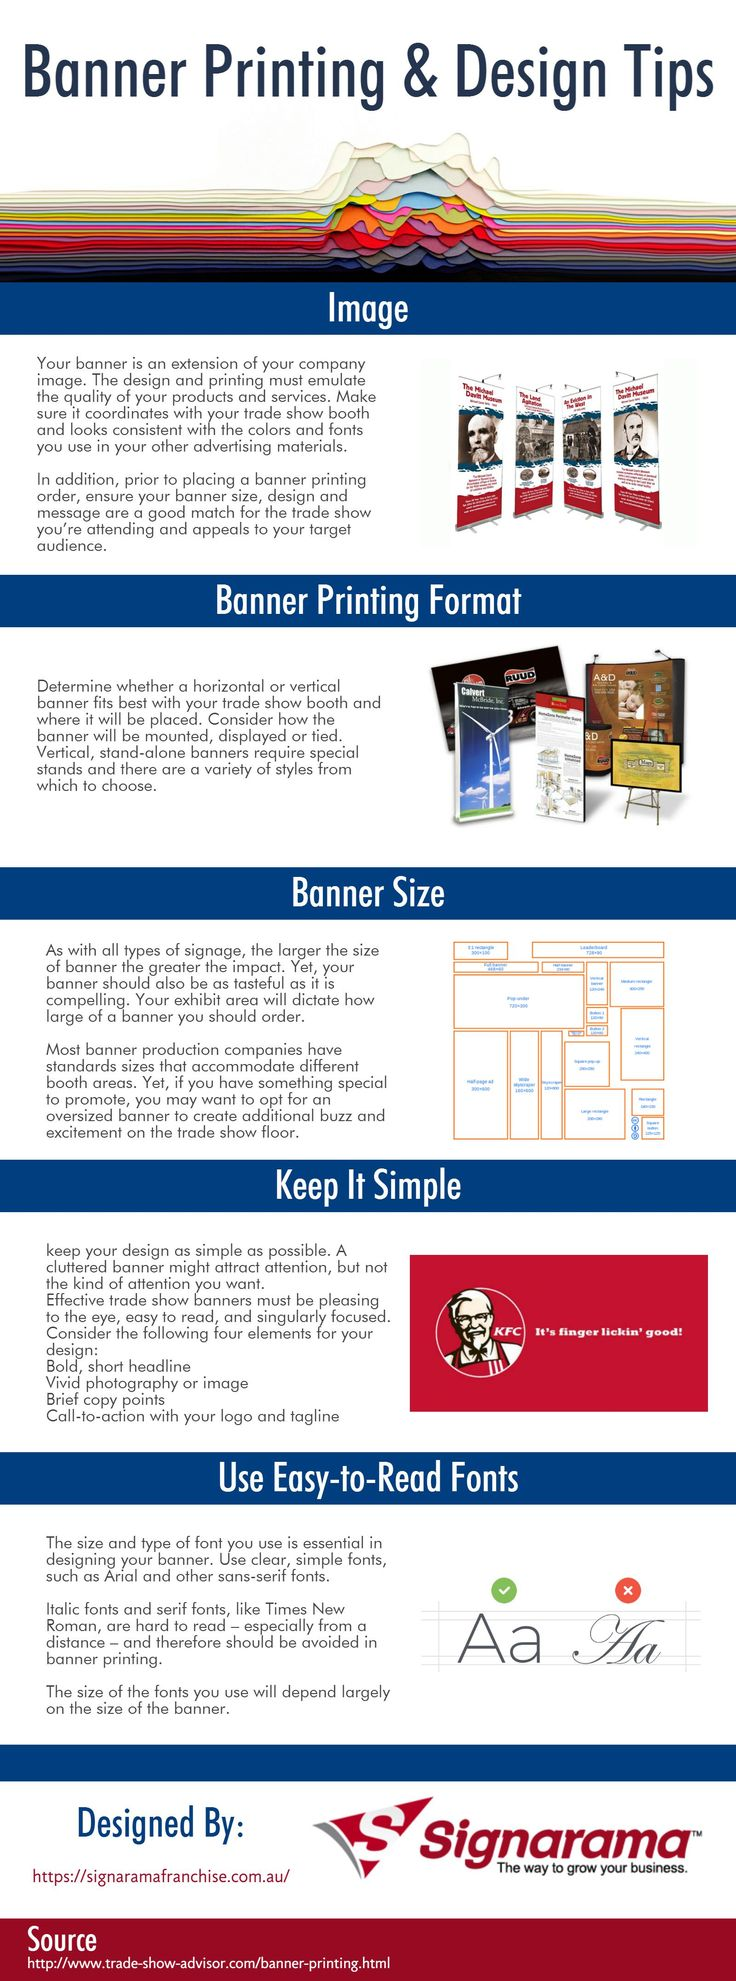 The following infographic is designed by Signarama Franchise. In this infographic you will learn some tips to consider when designing or a banner for printing. Commonly speaking, a vinyl banner is simple to design. Any person having a small experience of graphic design can easily design a vinyl banner. And yet if you have no experience, your dealer can direct you on the right way, or even design your banner on a little charge.